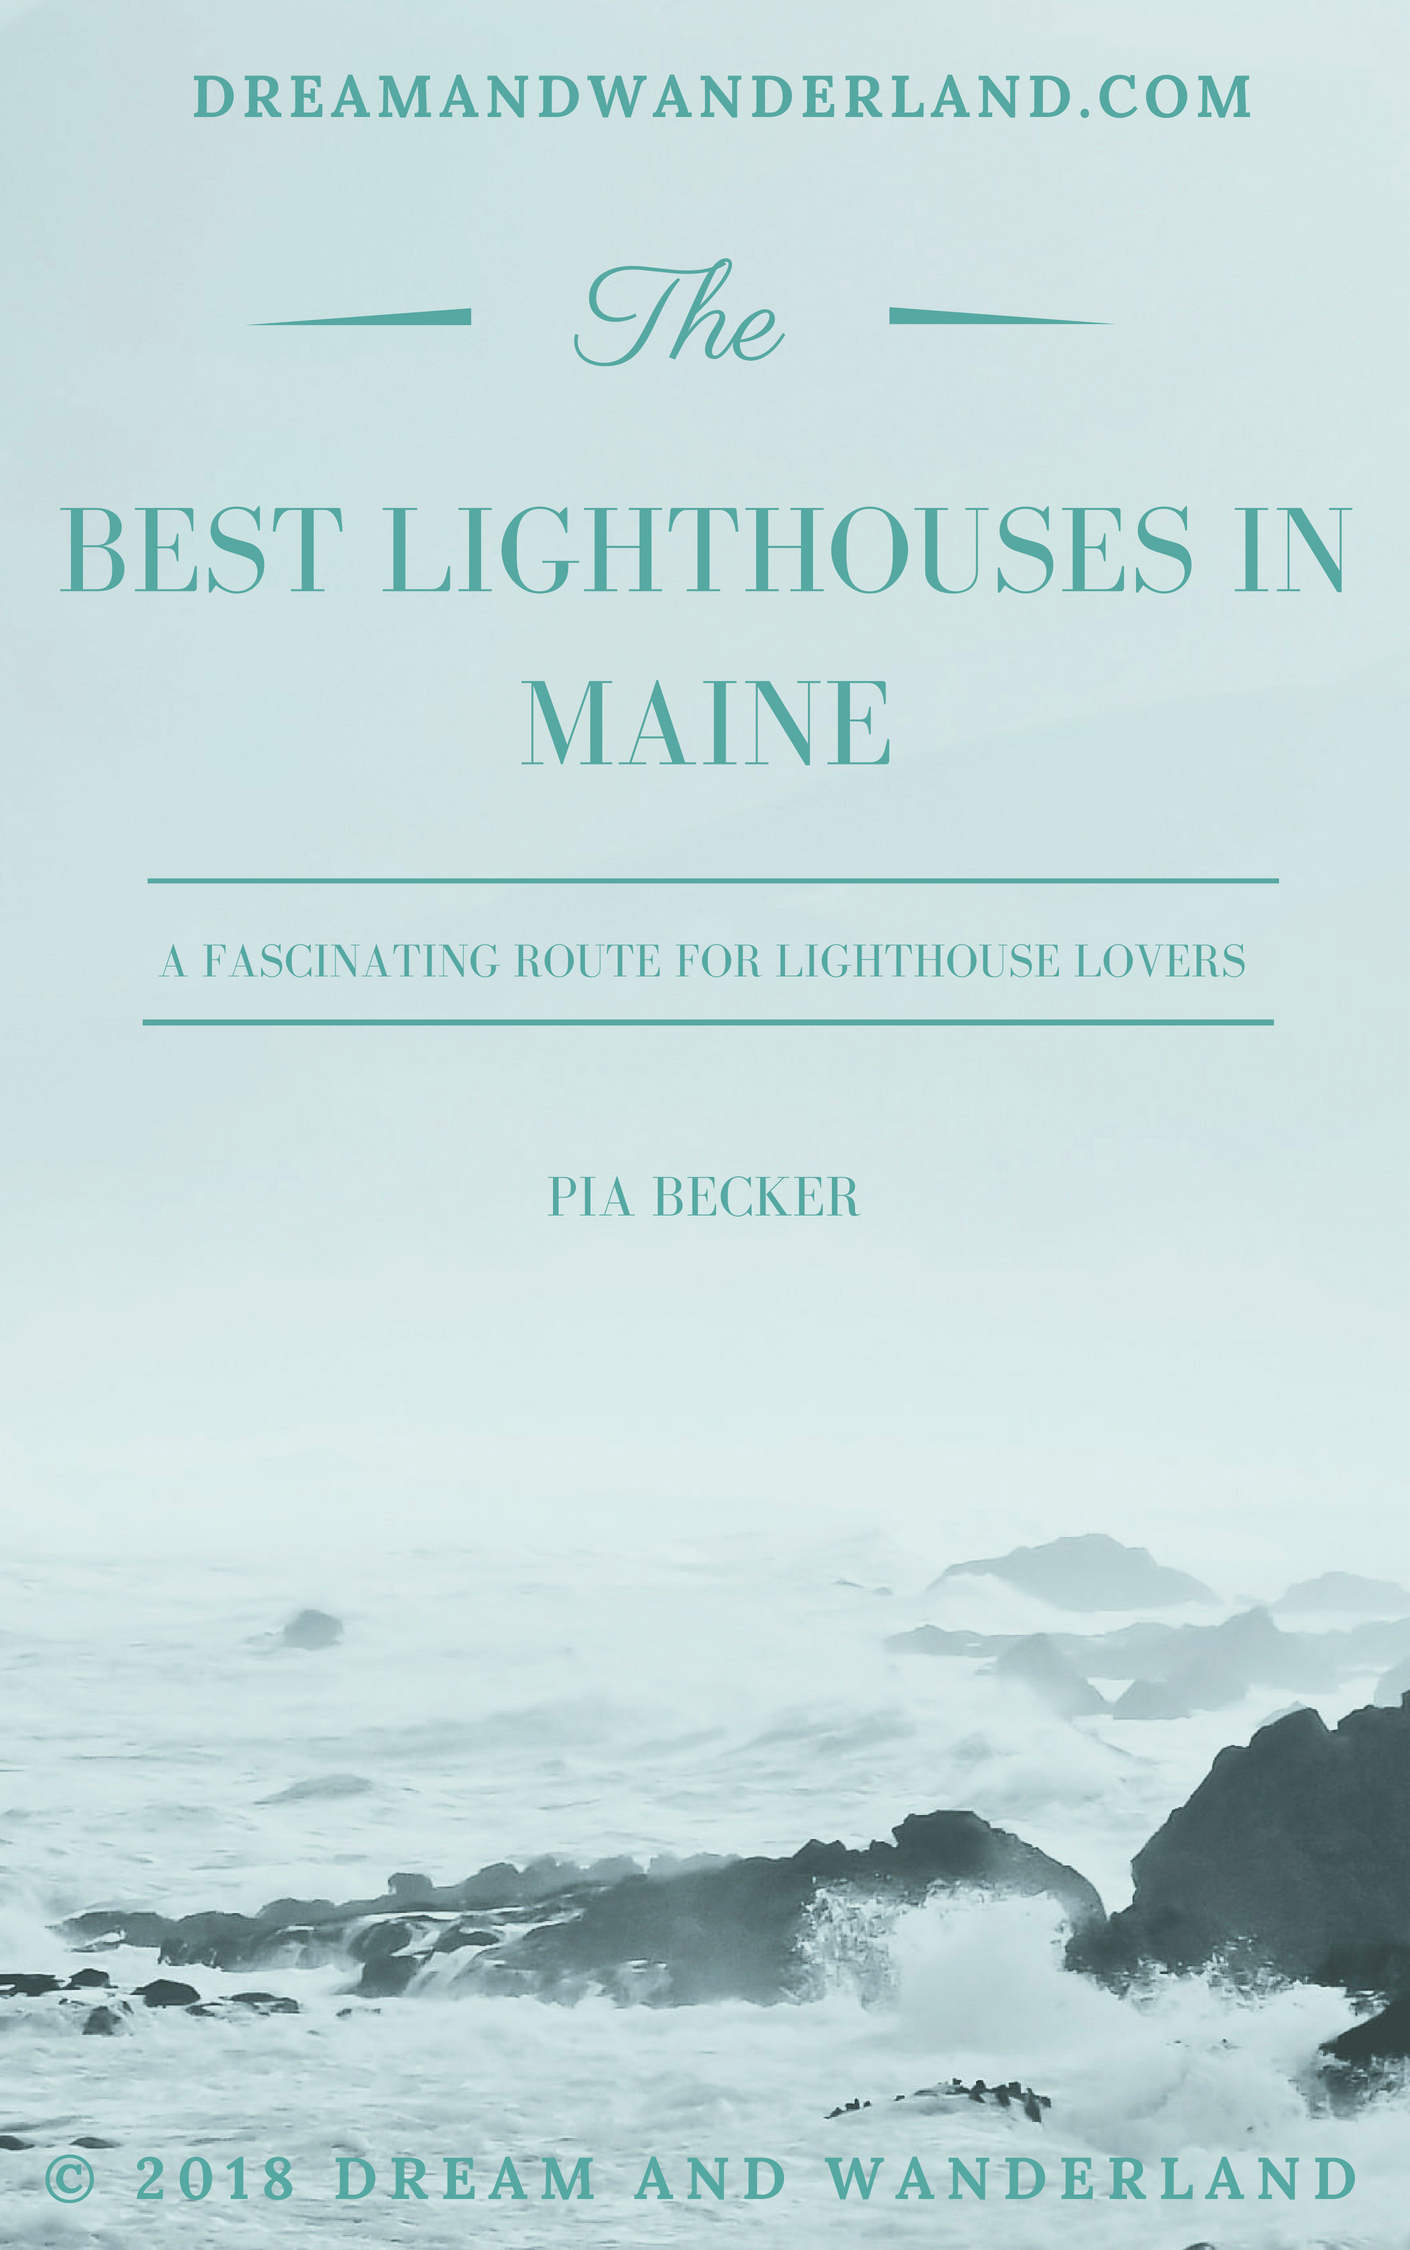 New England - Lighthouses in Maine - Travel Guide #thingstodo #newengland #roadtrip #lighthouses #travel